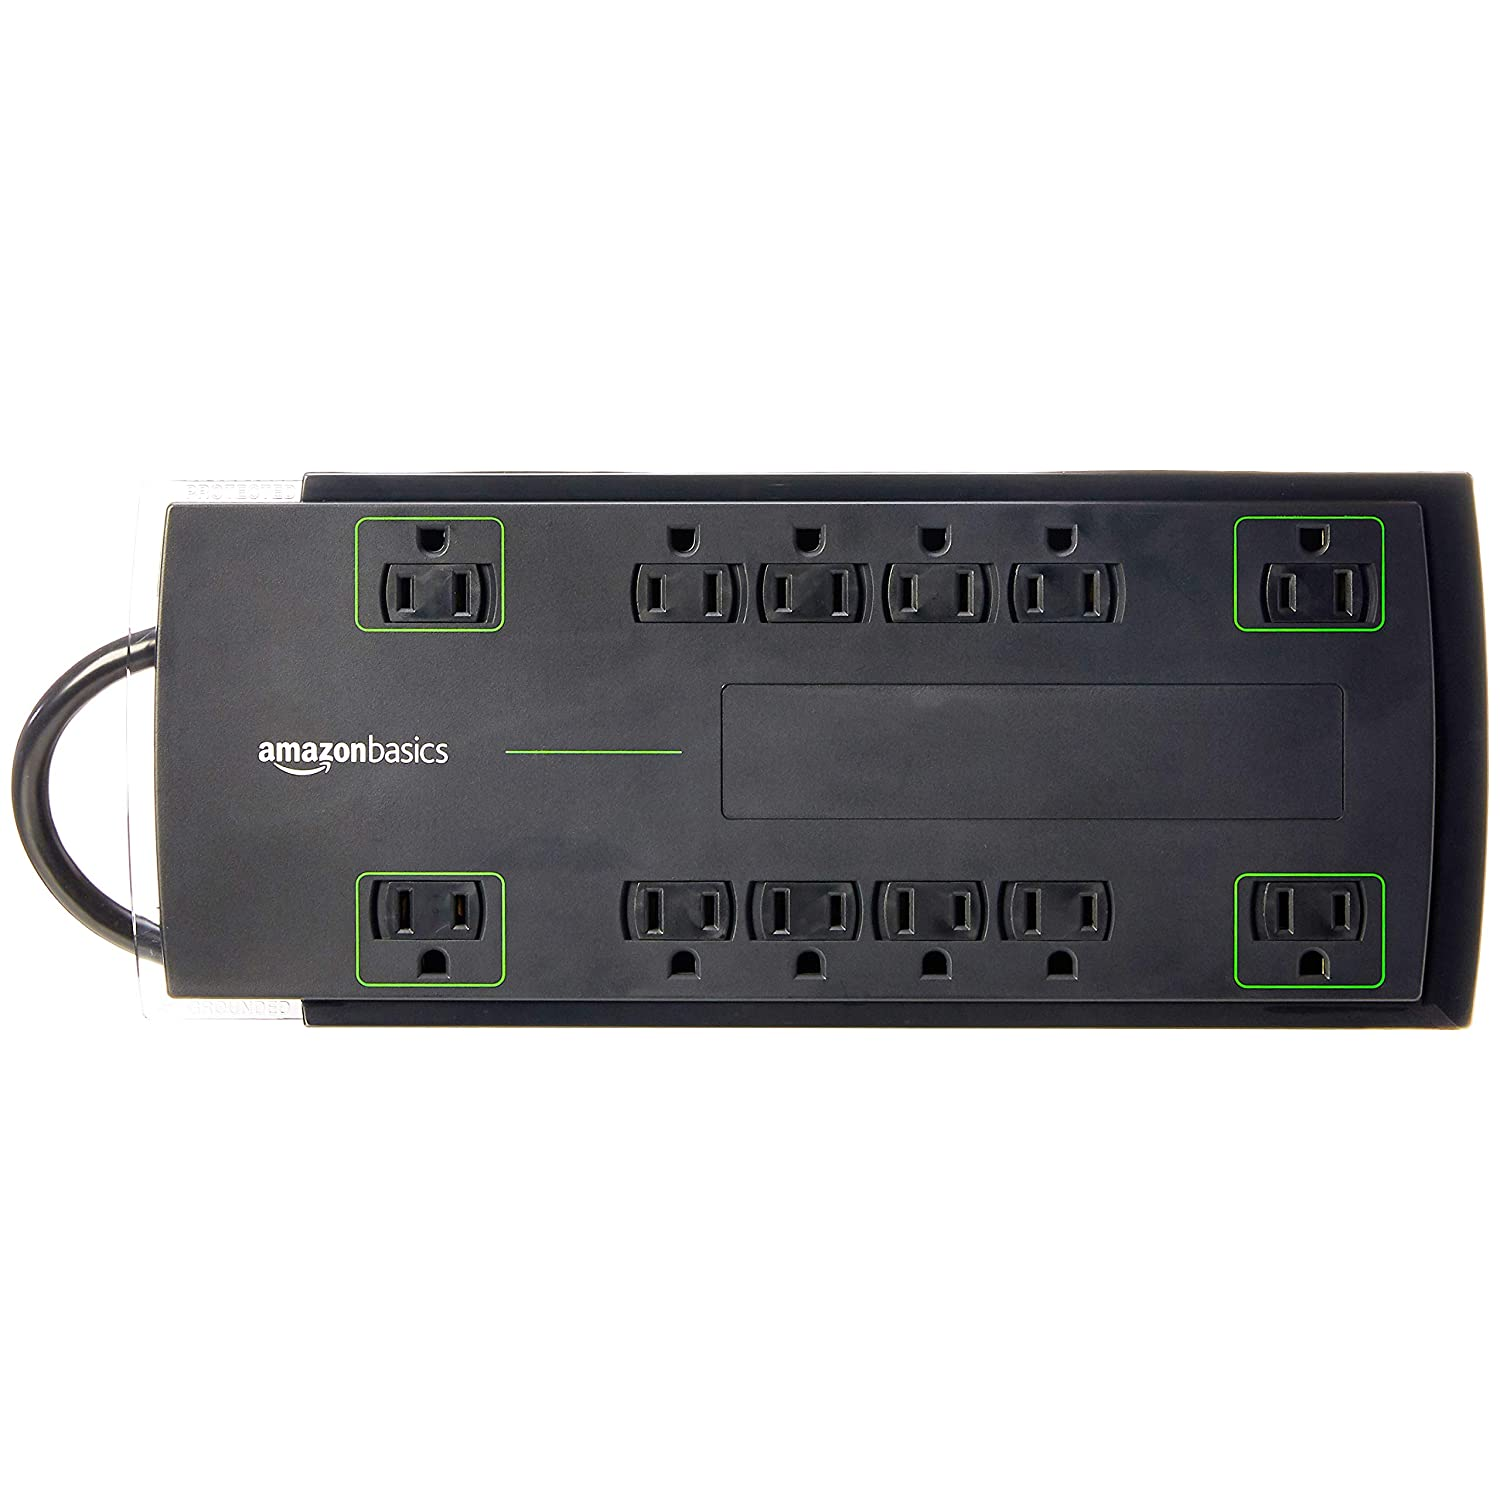 AmazonBasics 12-Outlet Surge Protector | 4,320 Joule, 10-Foot Cord